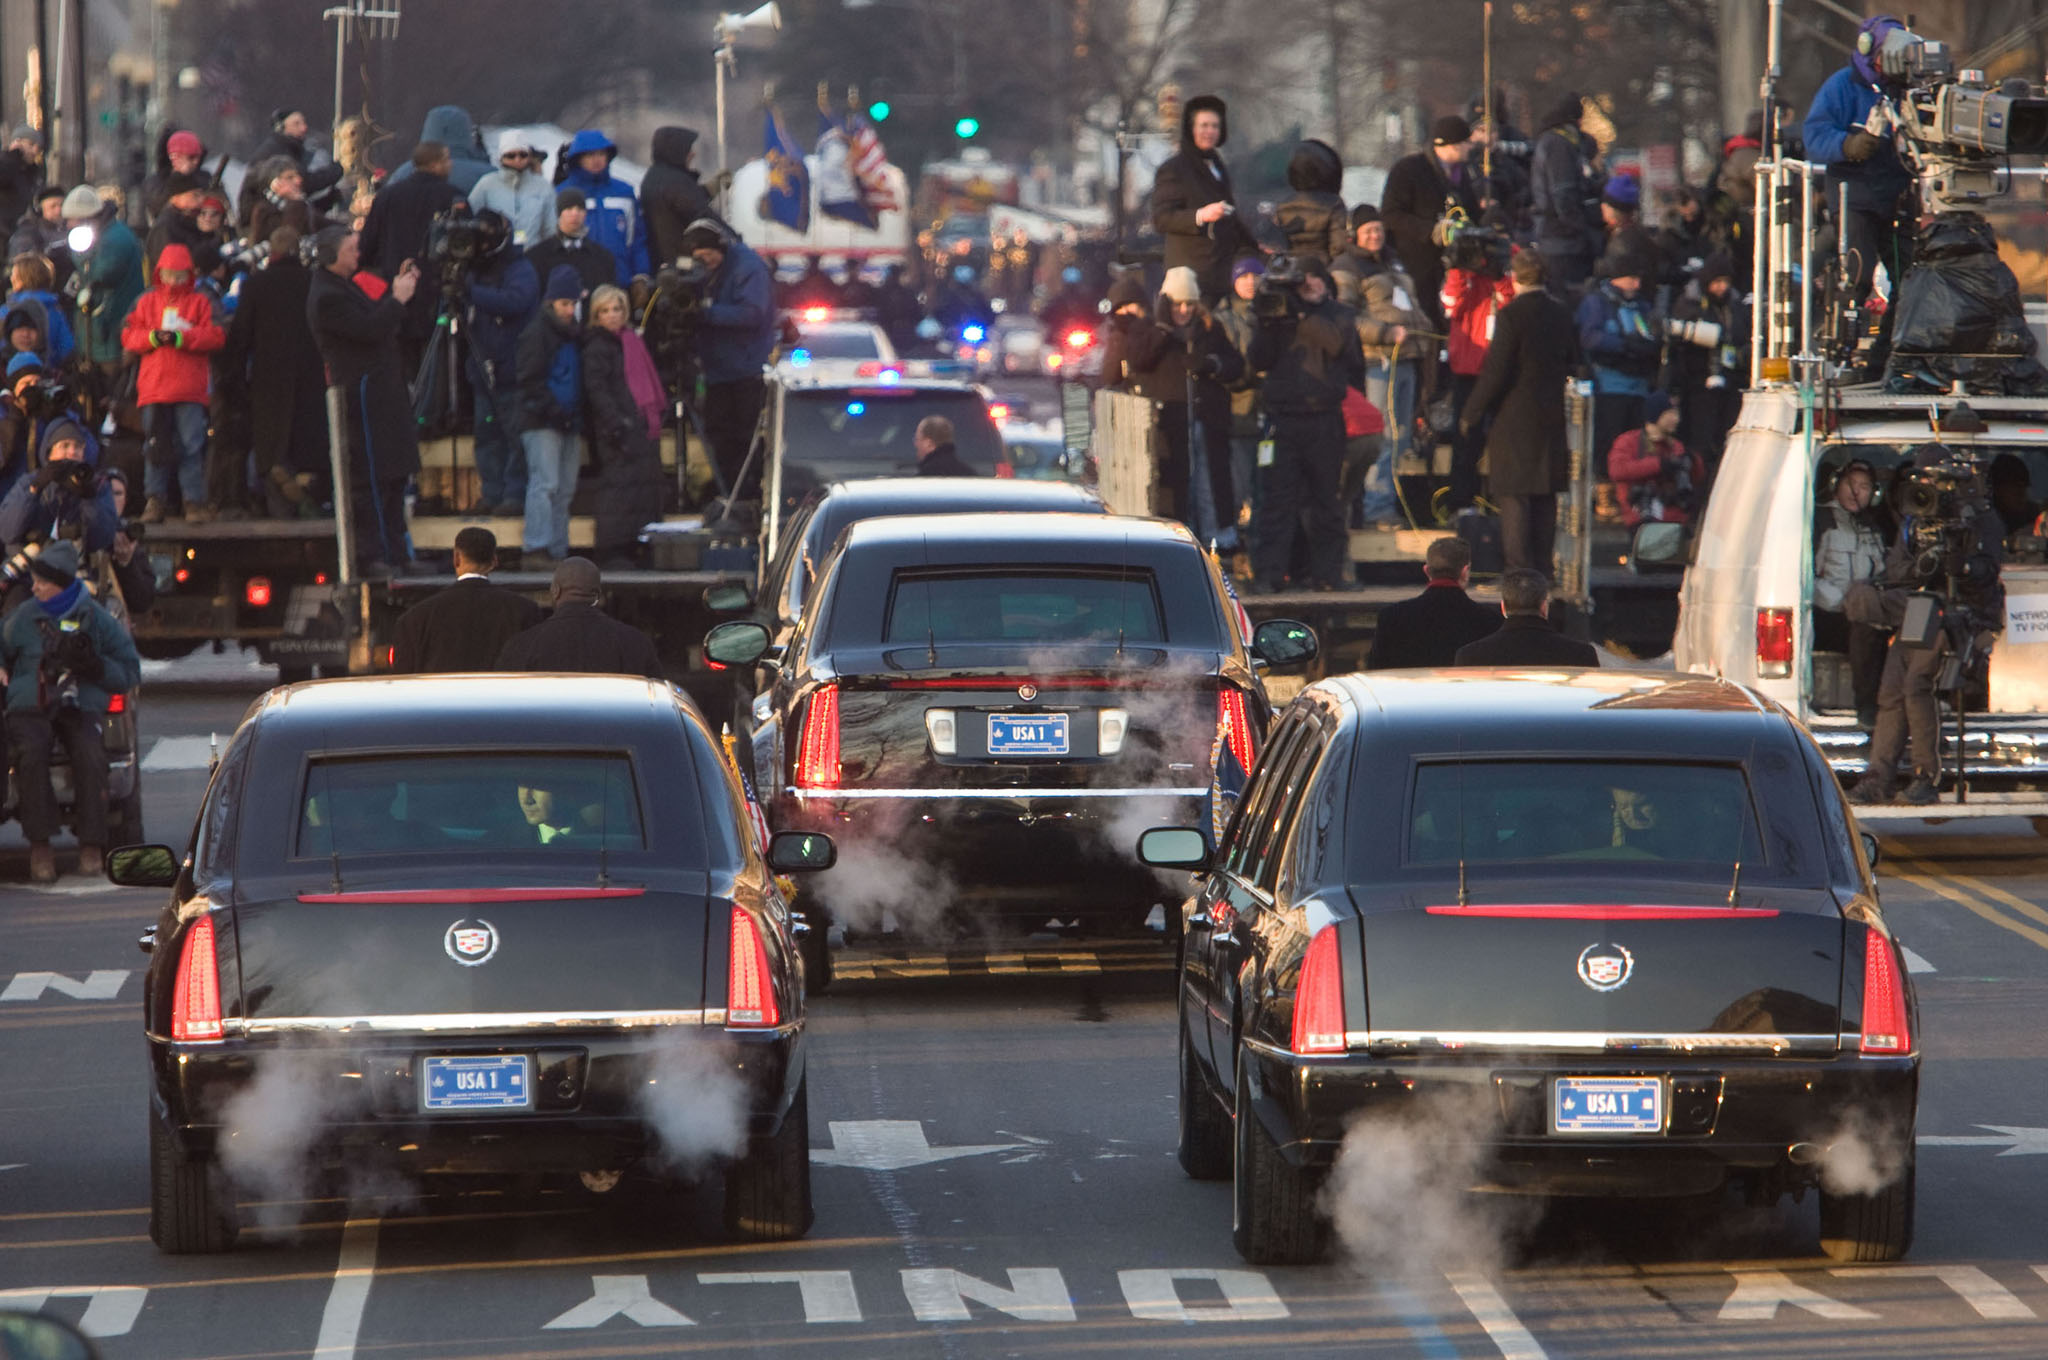 Cadillac May Compete for New Secret Service Armored Limo Contract